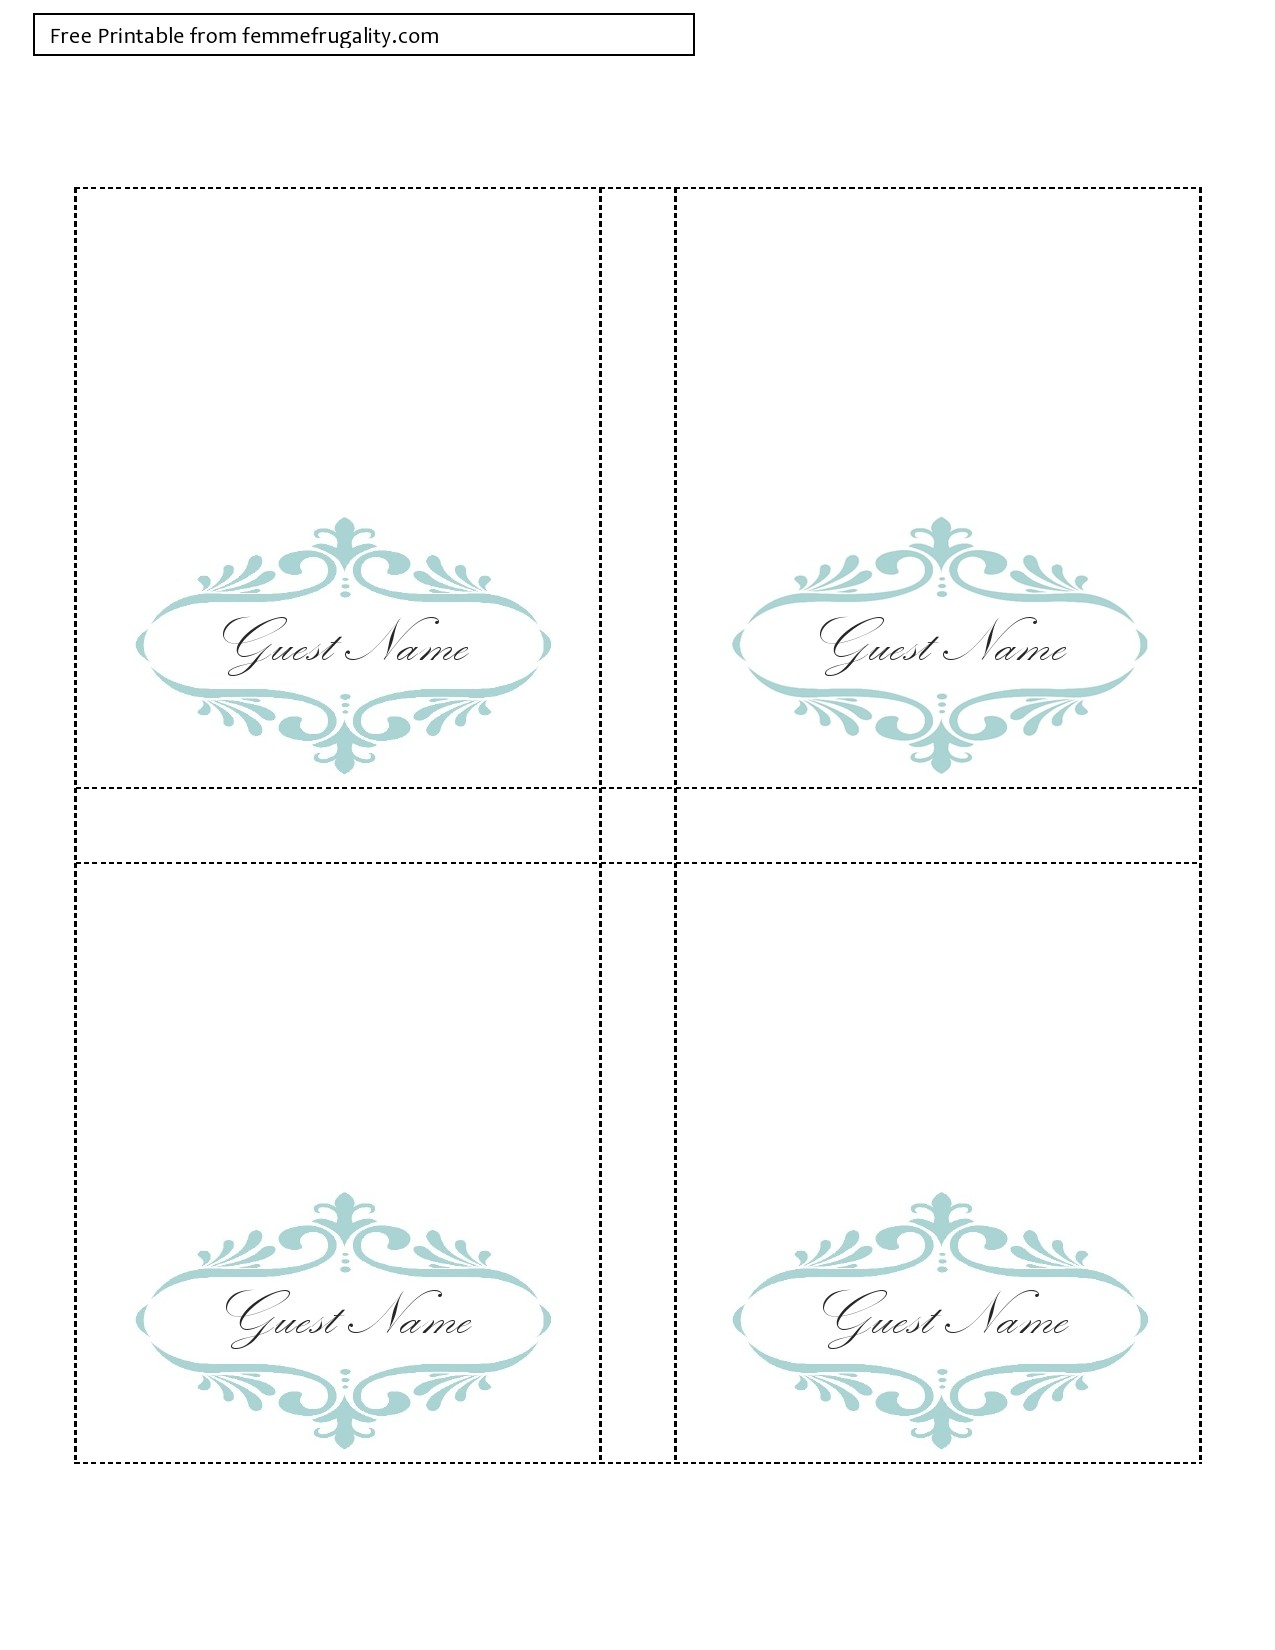 Tent Card Flat Card Printable File Napkin Place Cards Editable pdf Template Seating Card Alba INSTANT DOWNLOAD Napkin Name Card